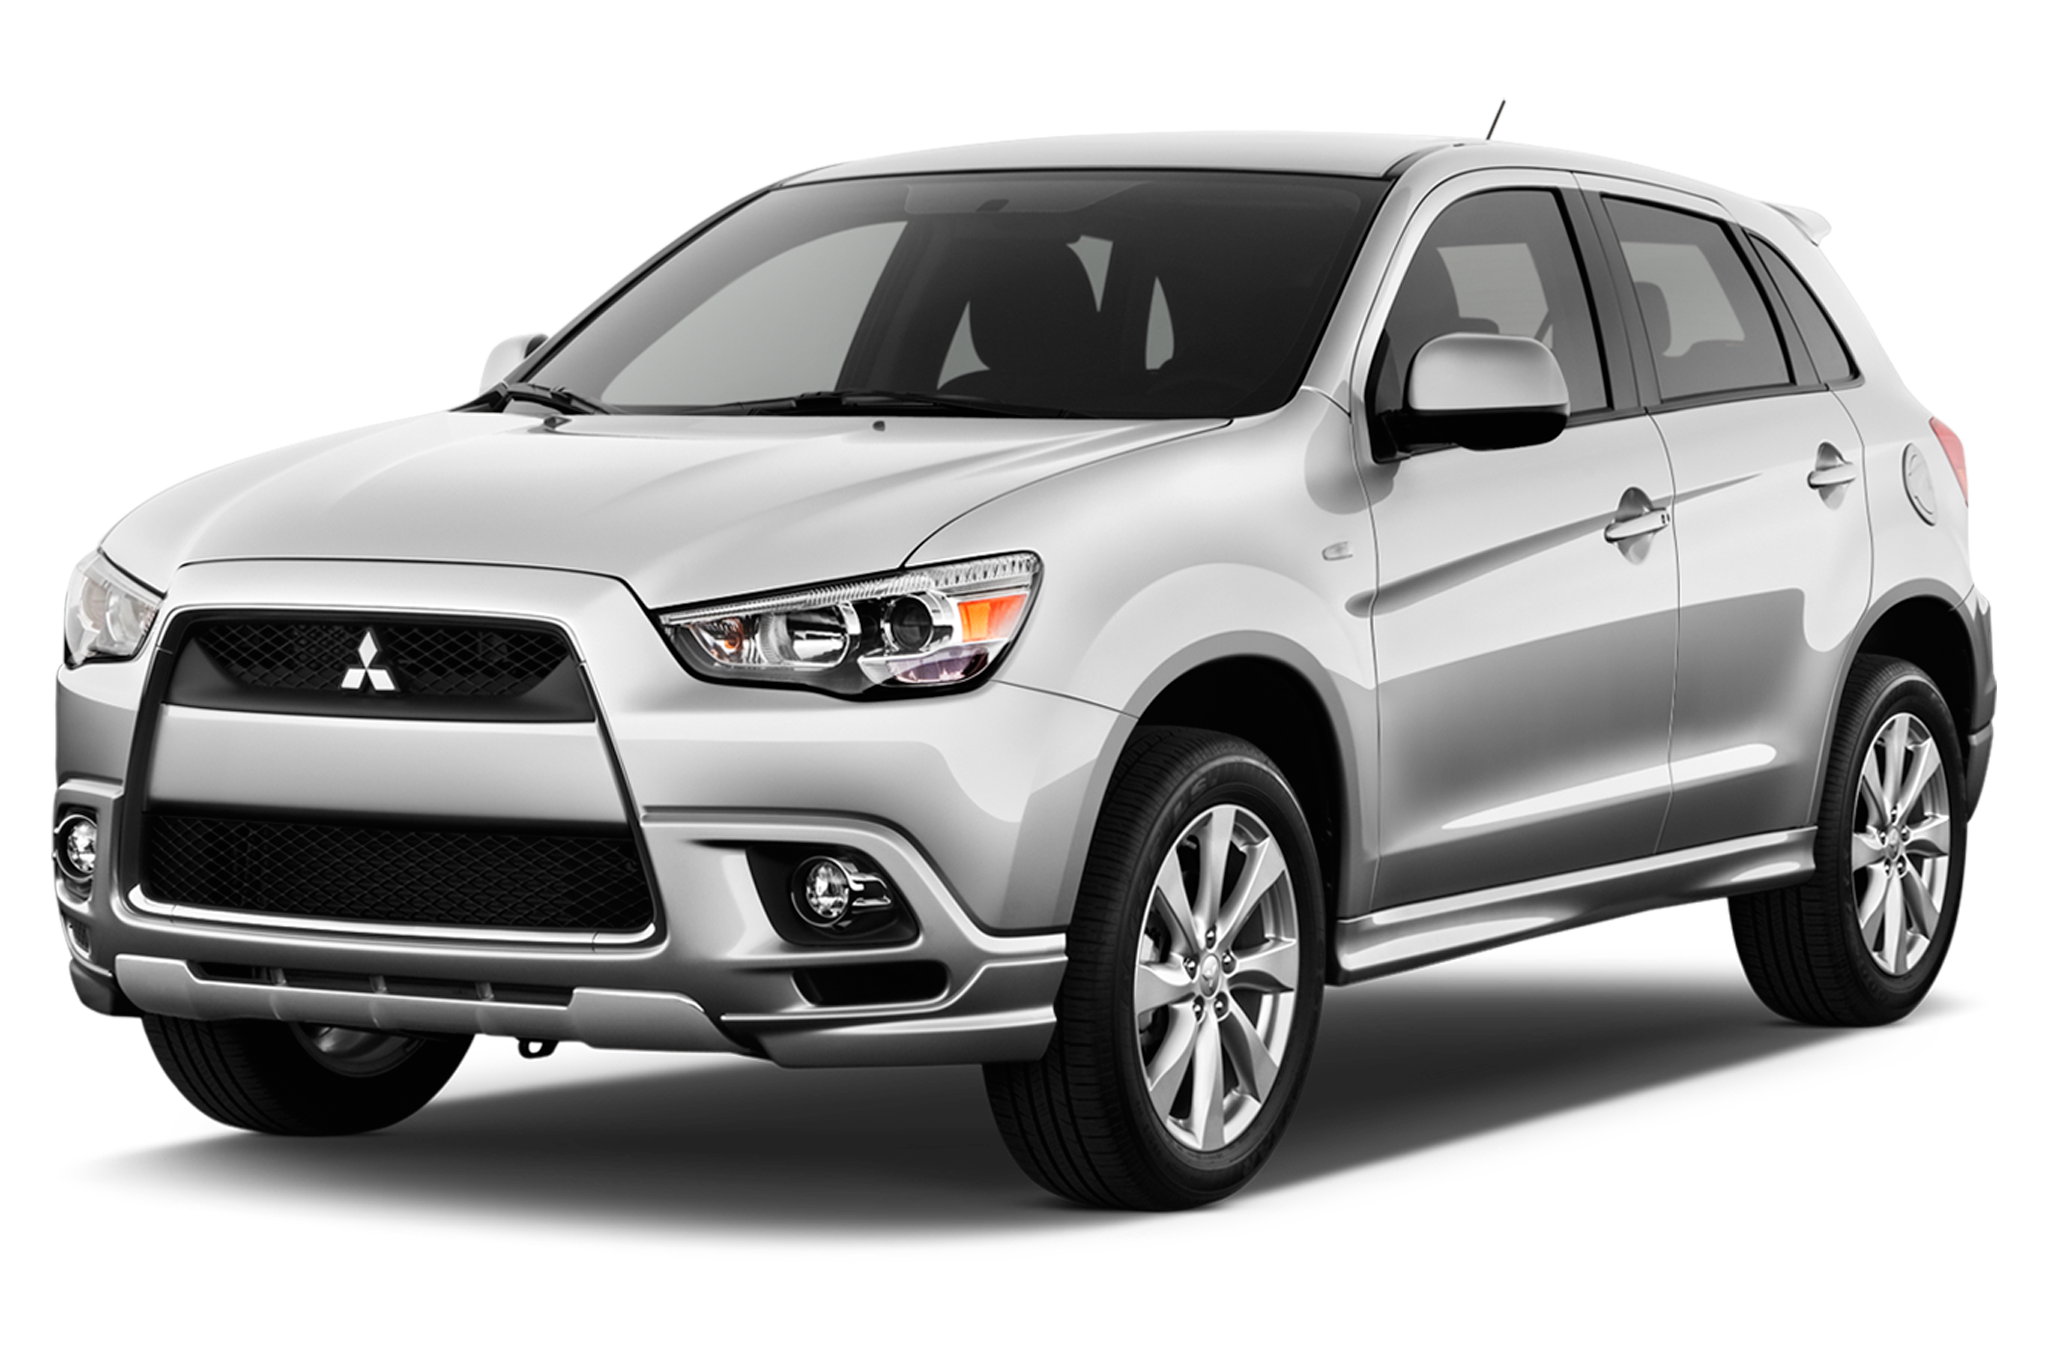 Mitsubishi car repair